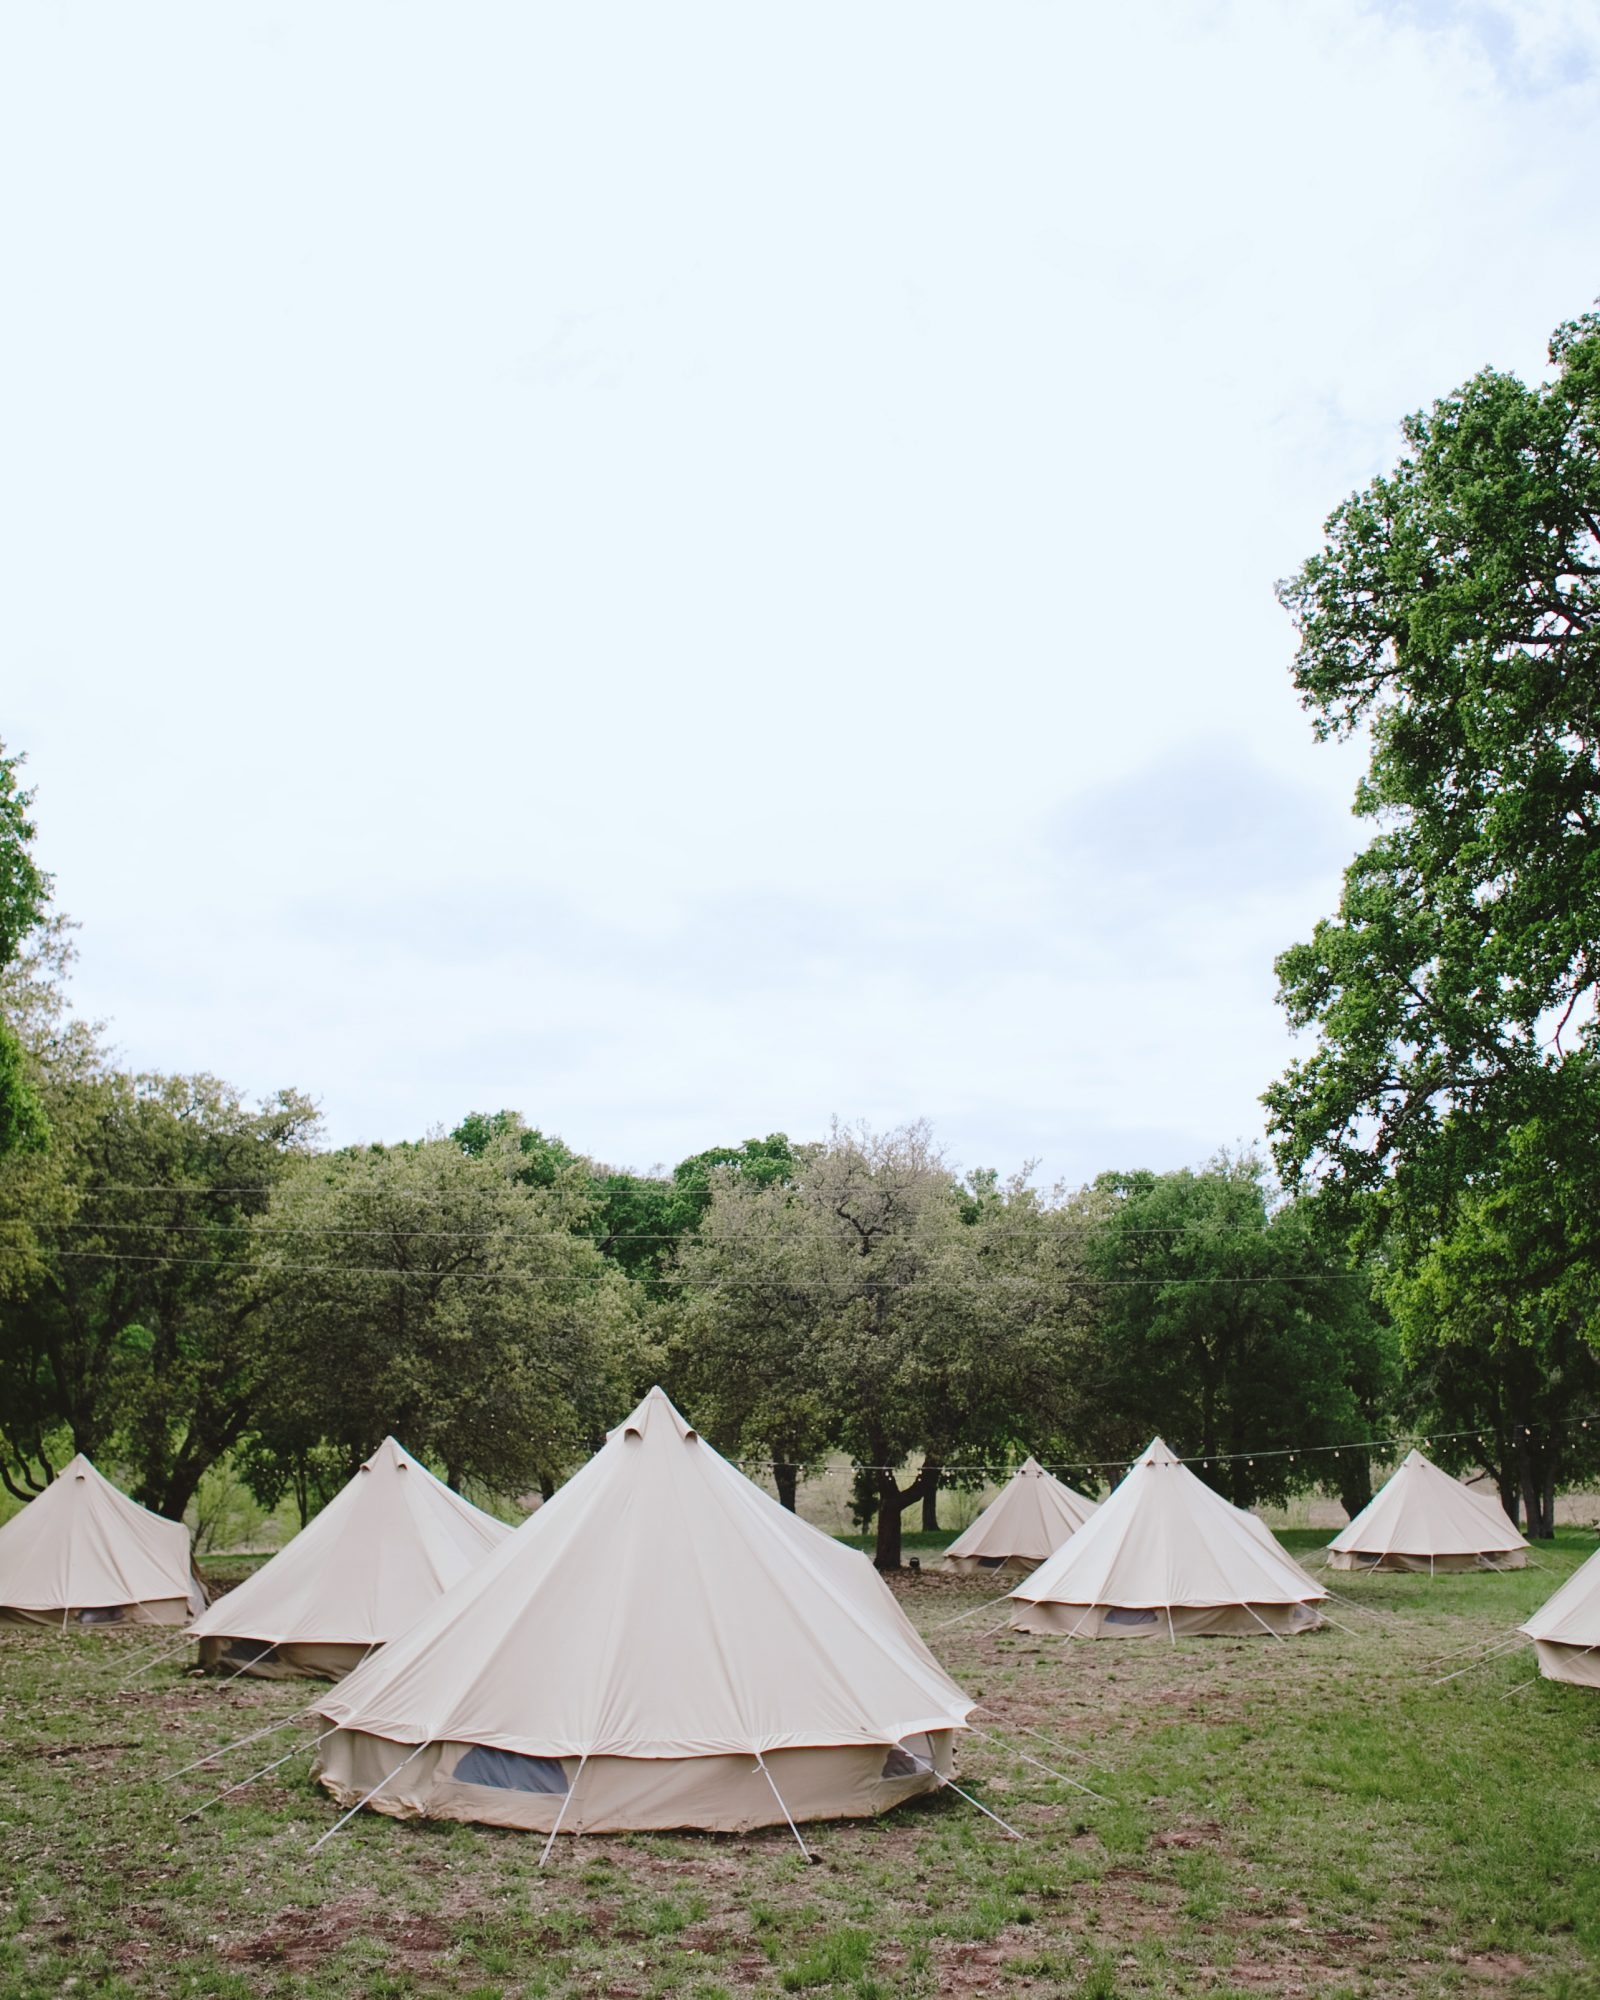 heather-tibaut-wedding-teepees-0314.jpg